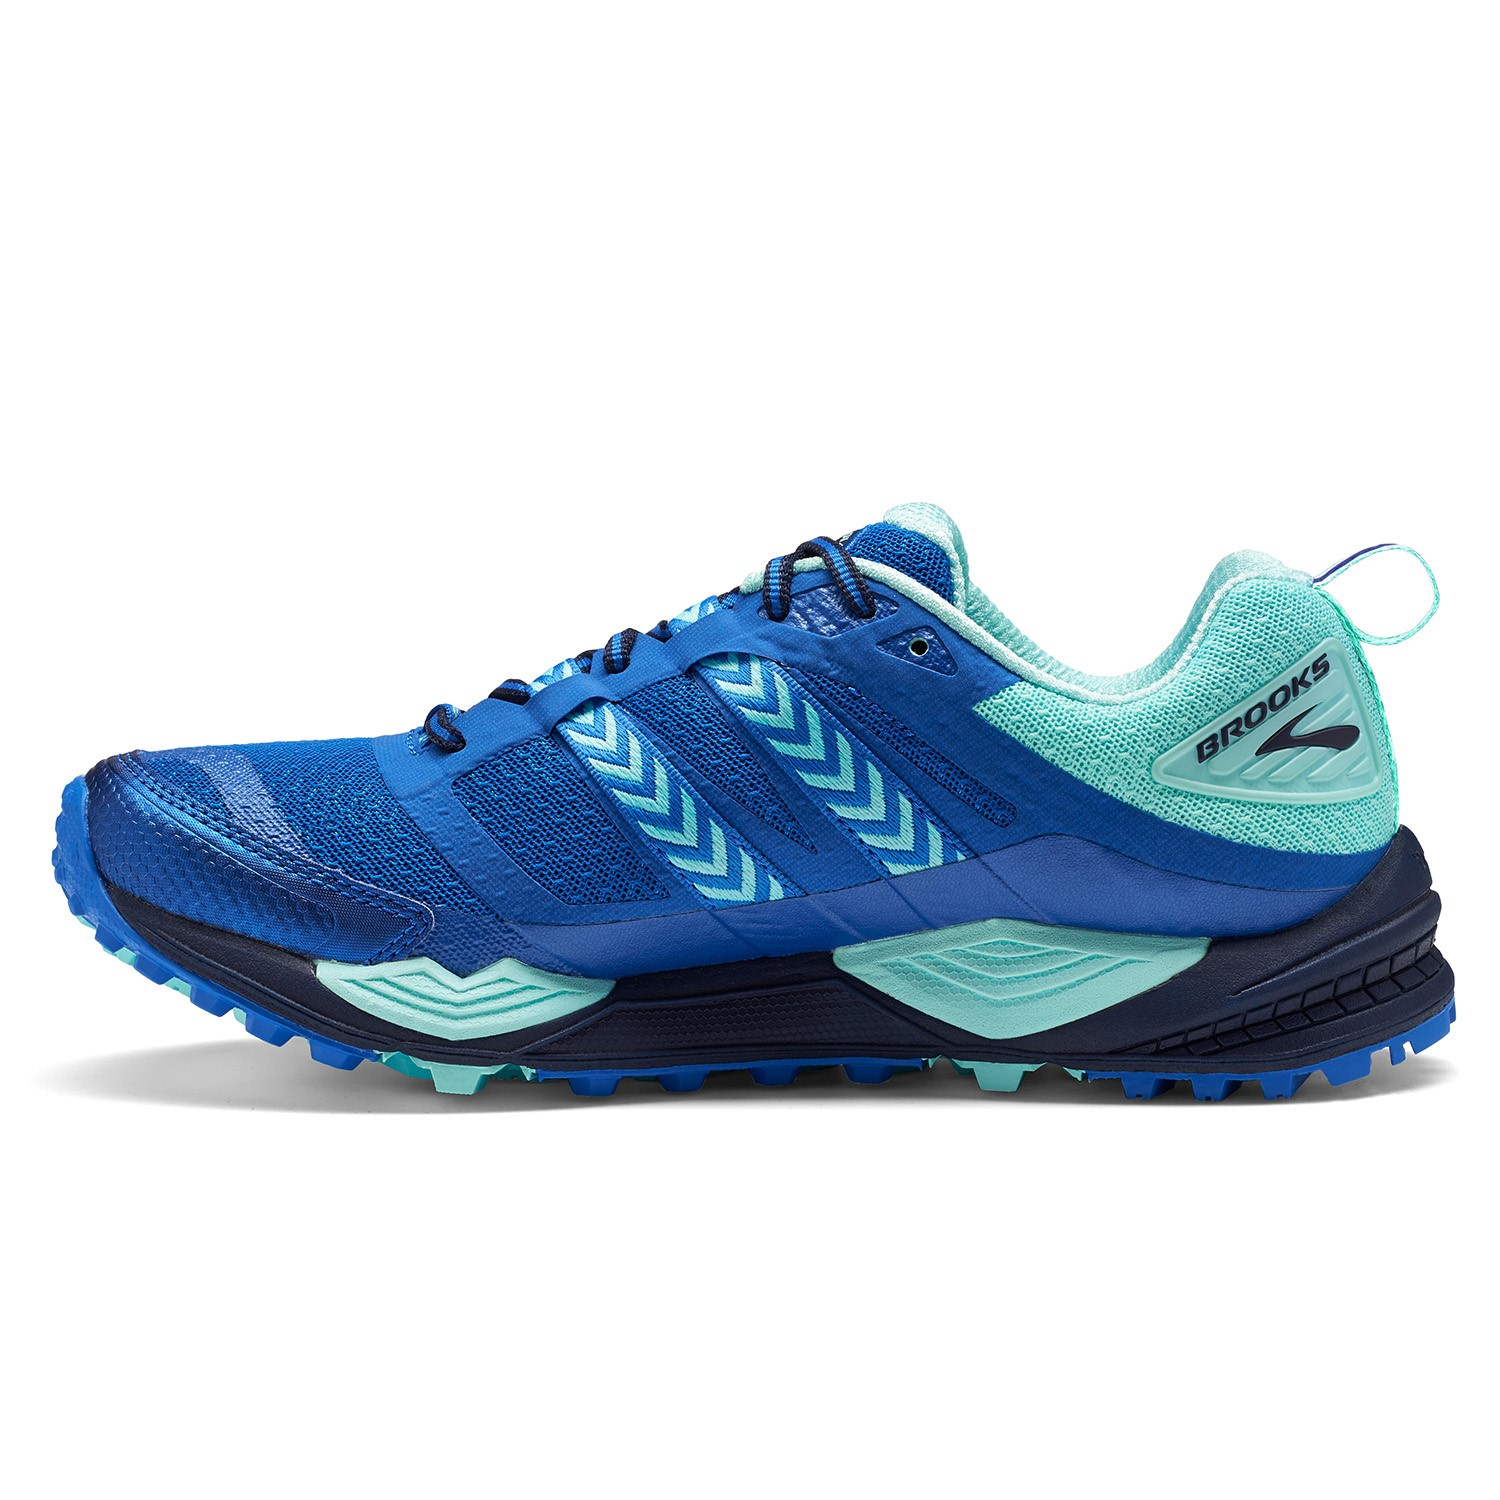 f6131cffde40f Brooks Cascadia 12 - Womens Trail Running Shoes - Navy Blue Mint ...